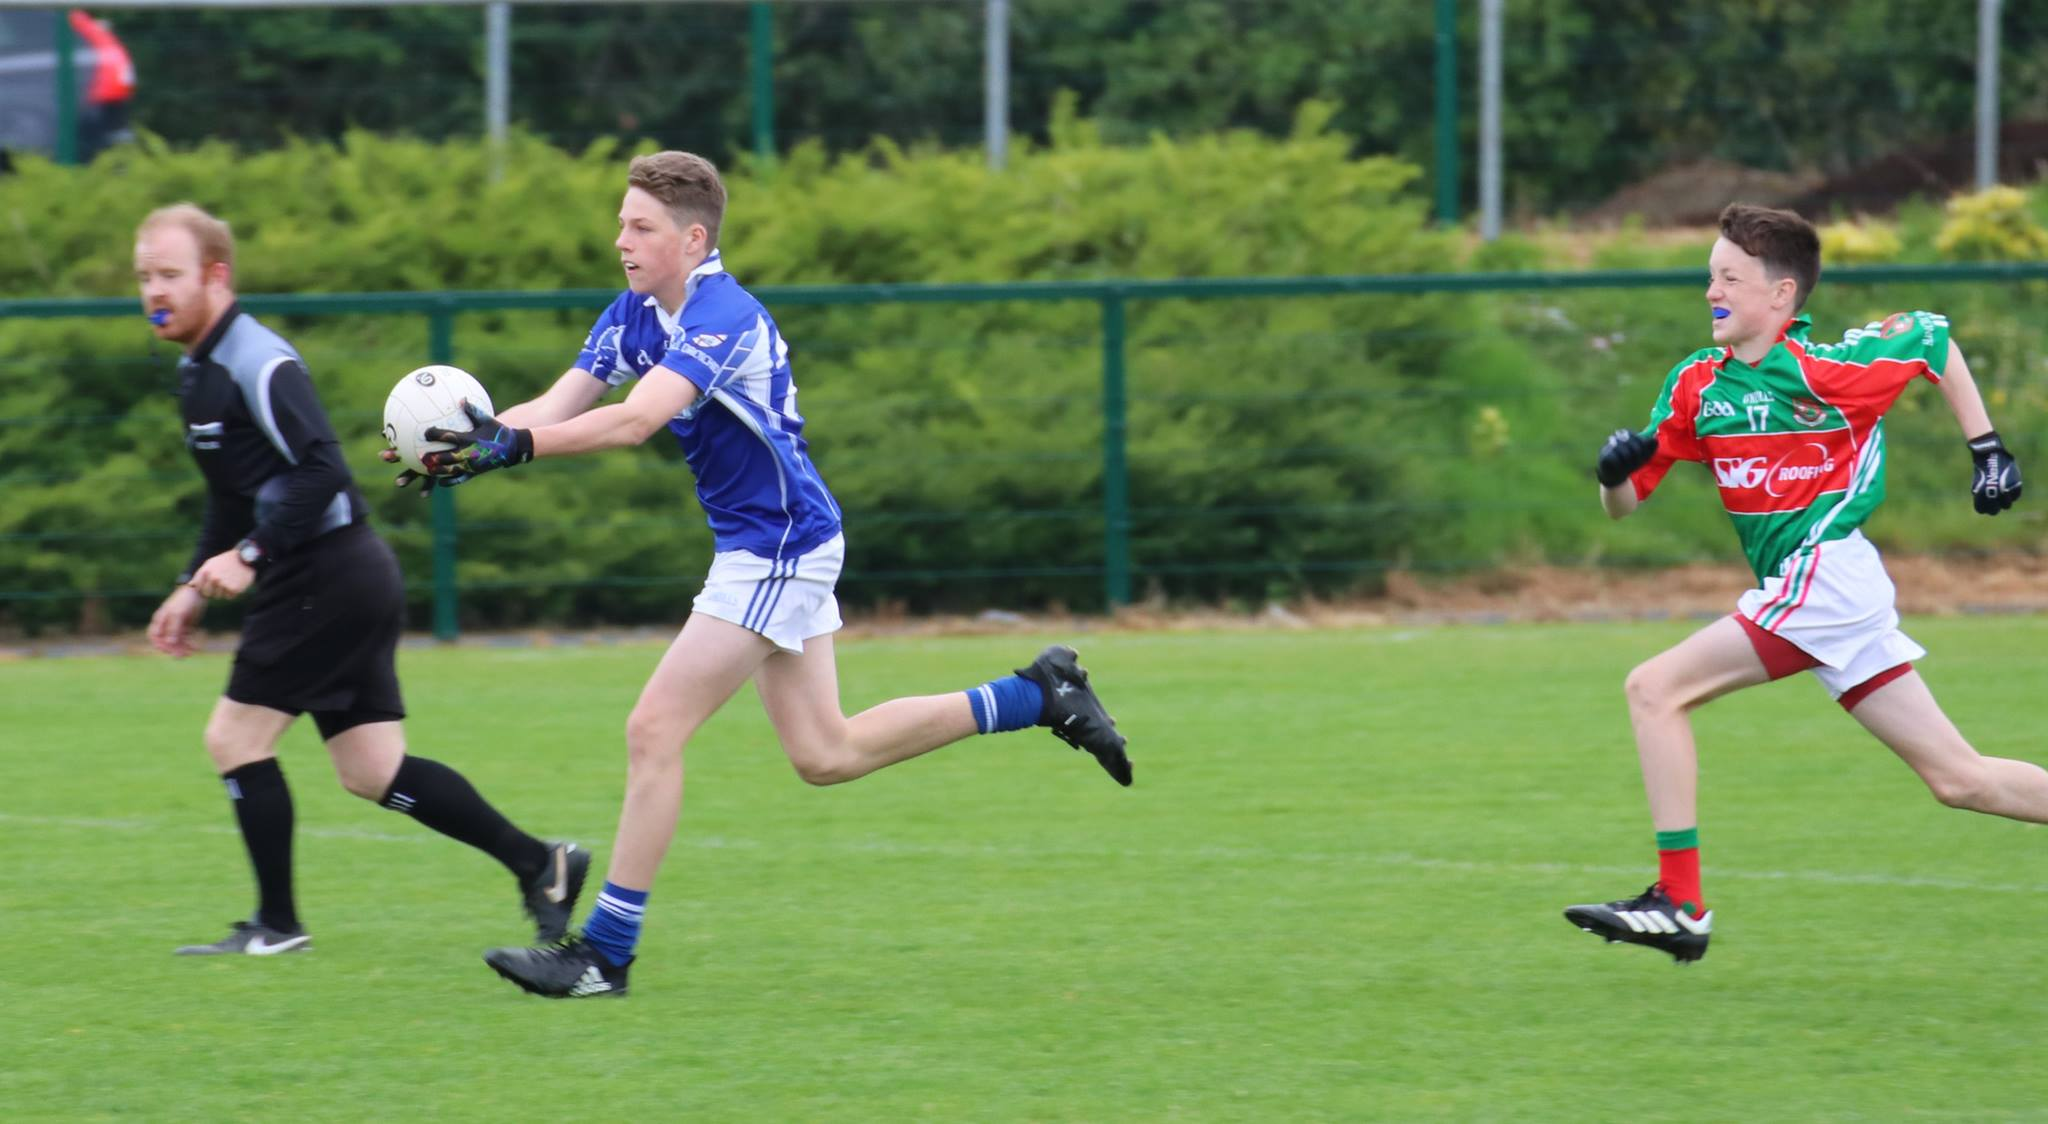 Suncroft v Celbridge Feile A Shield 2